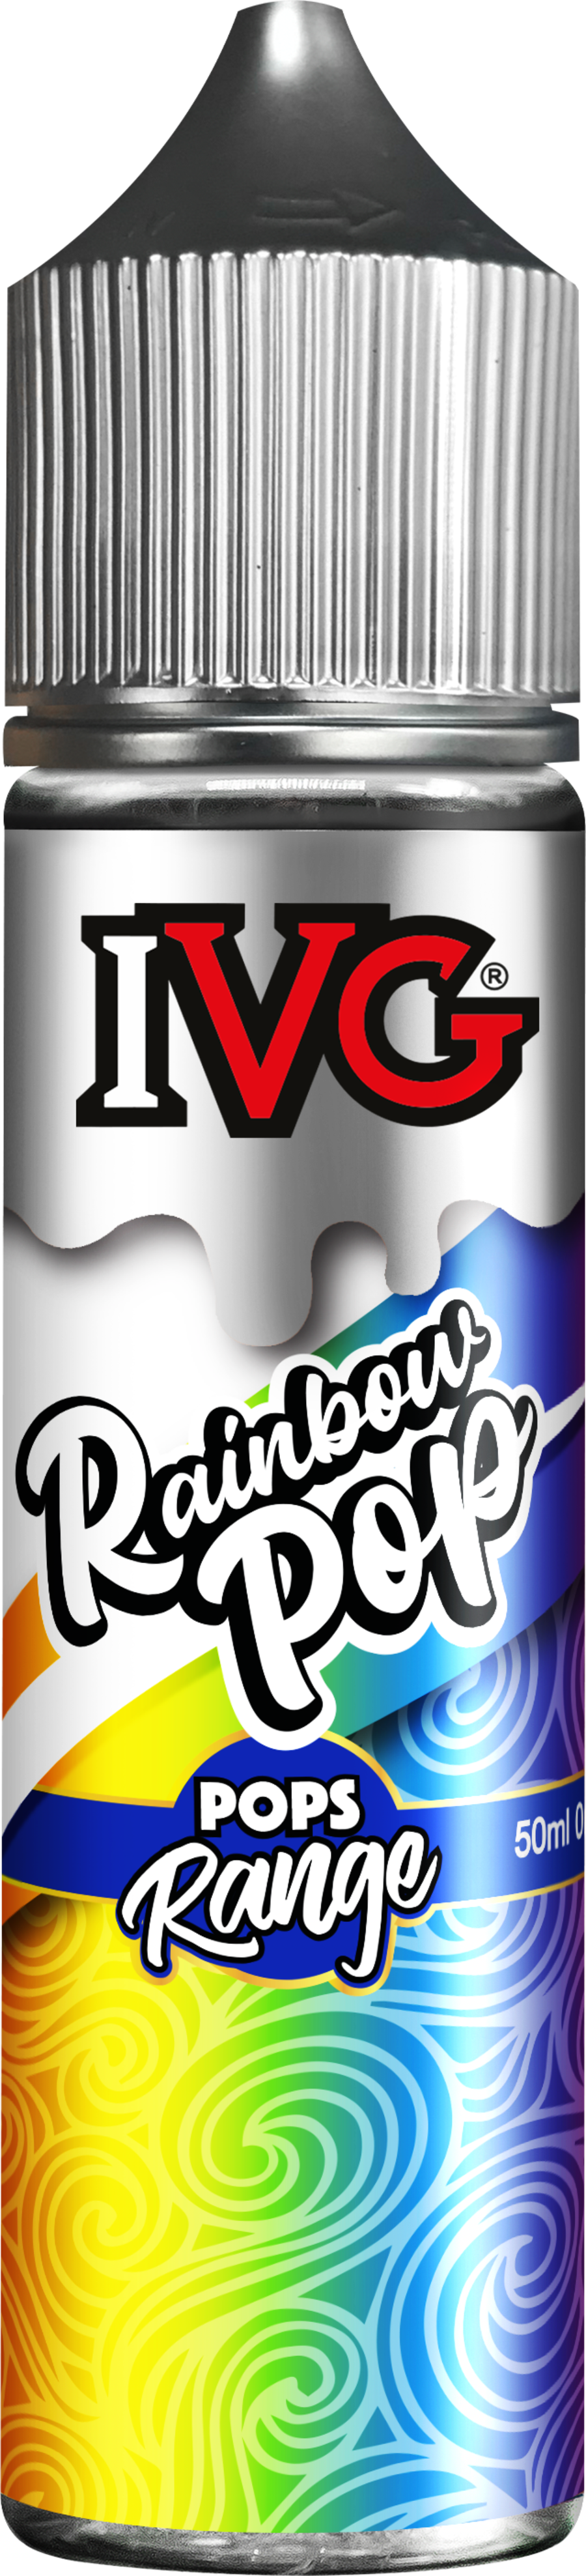 Rainbow pop by I VG Pops 50ml